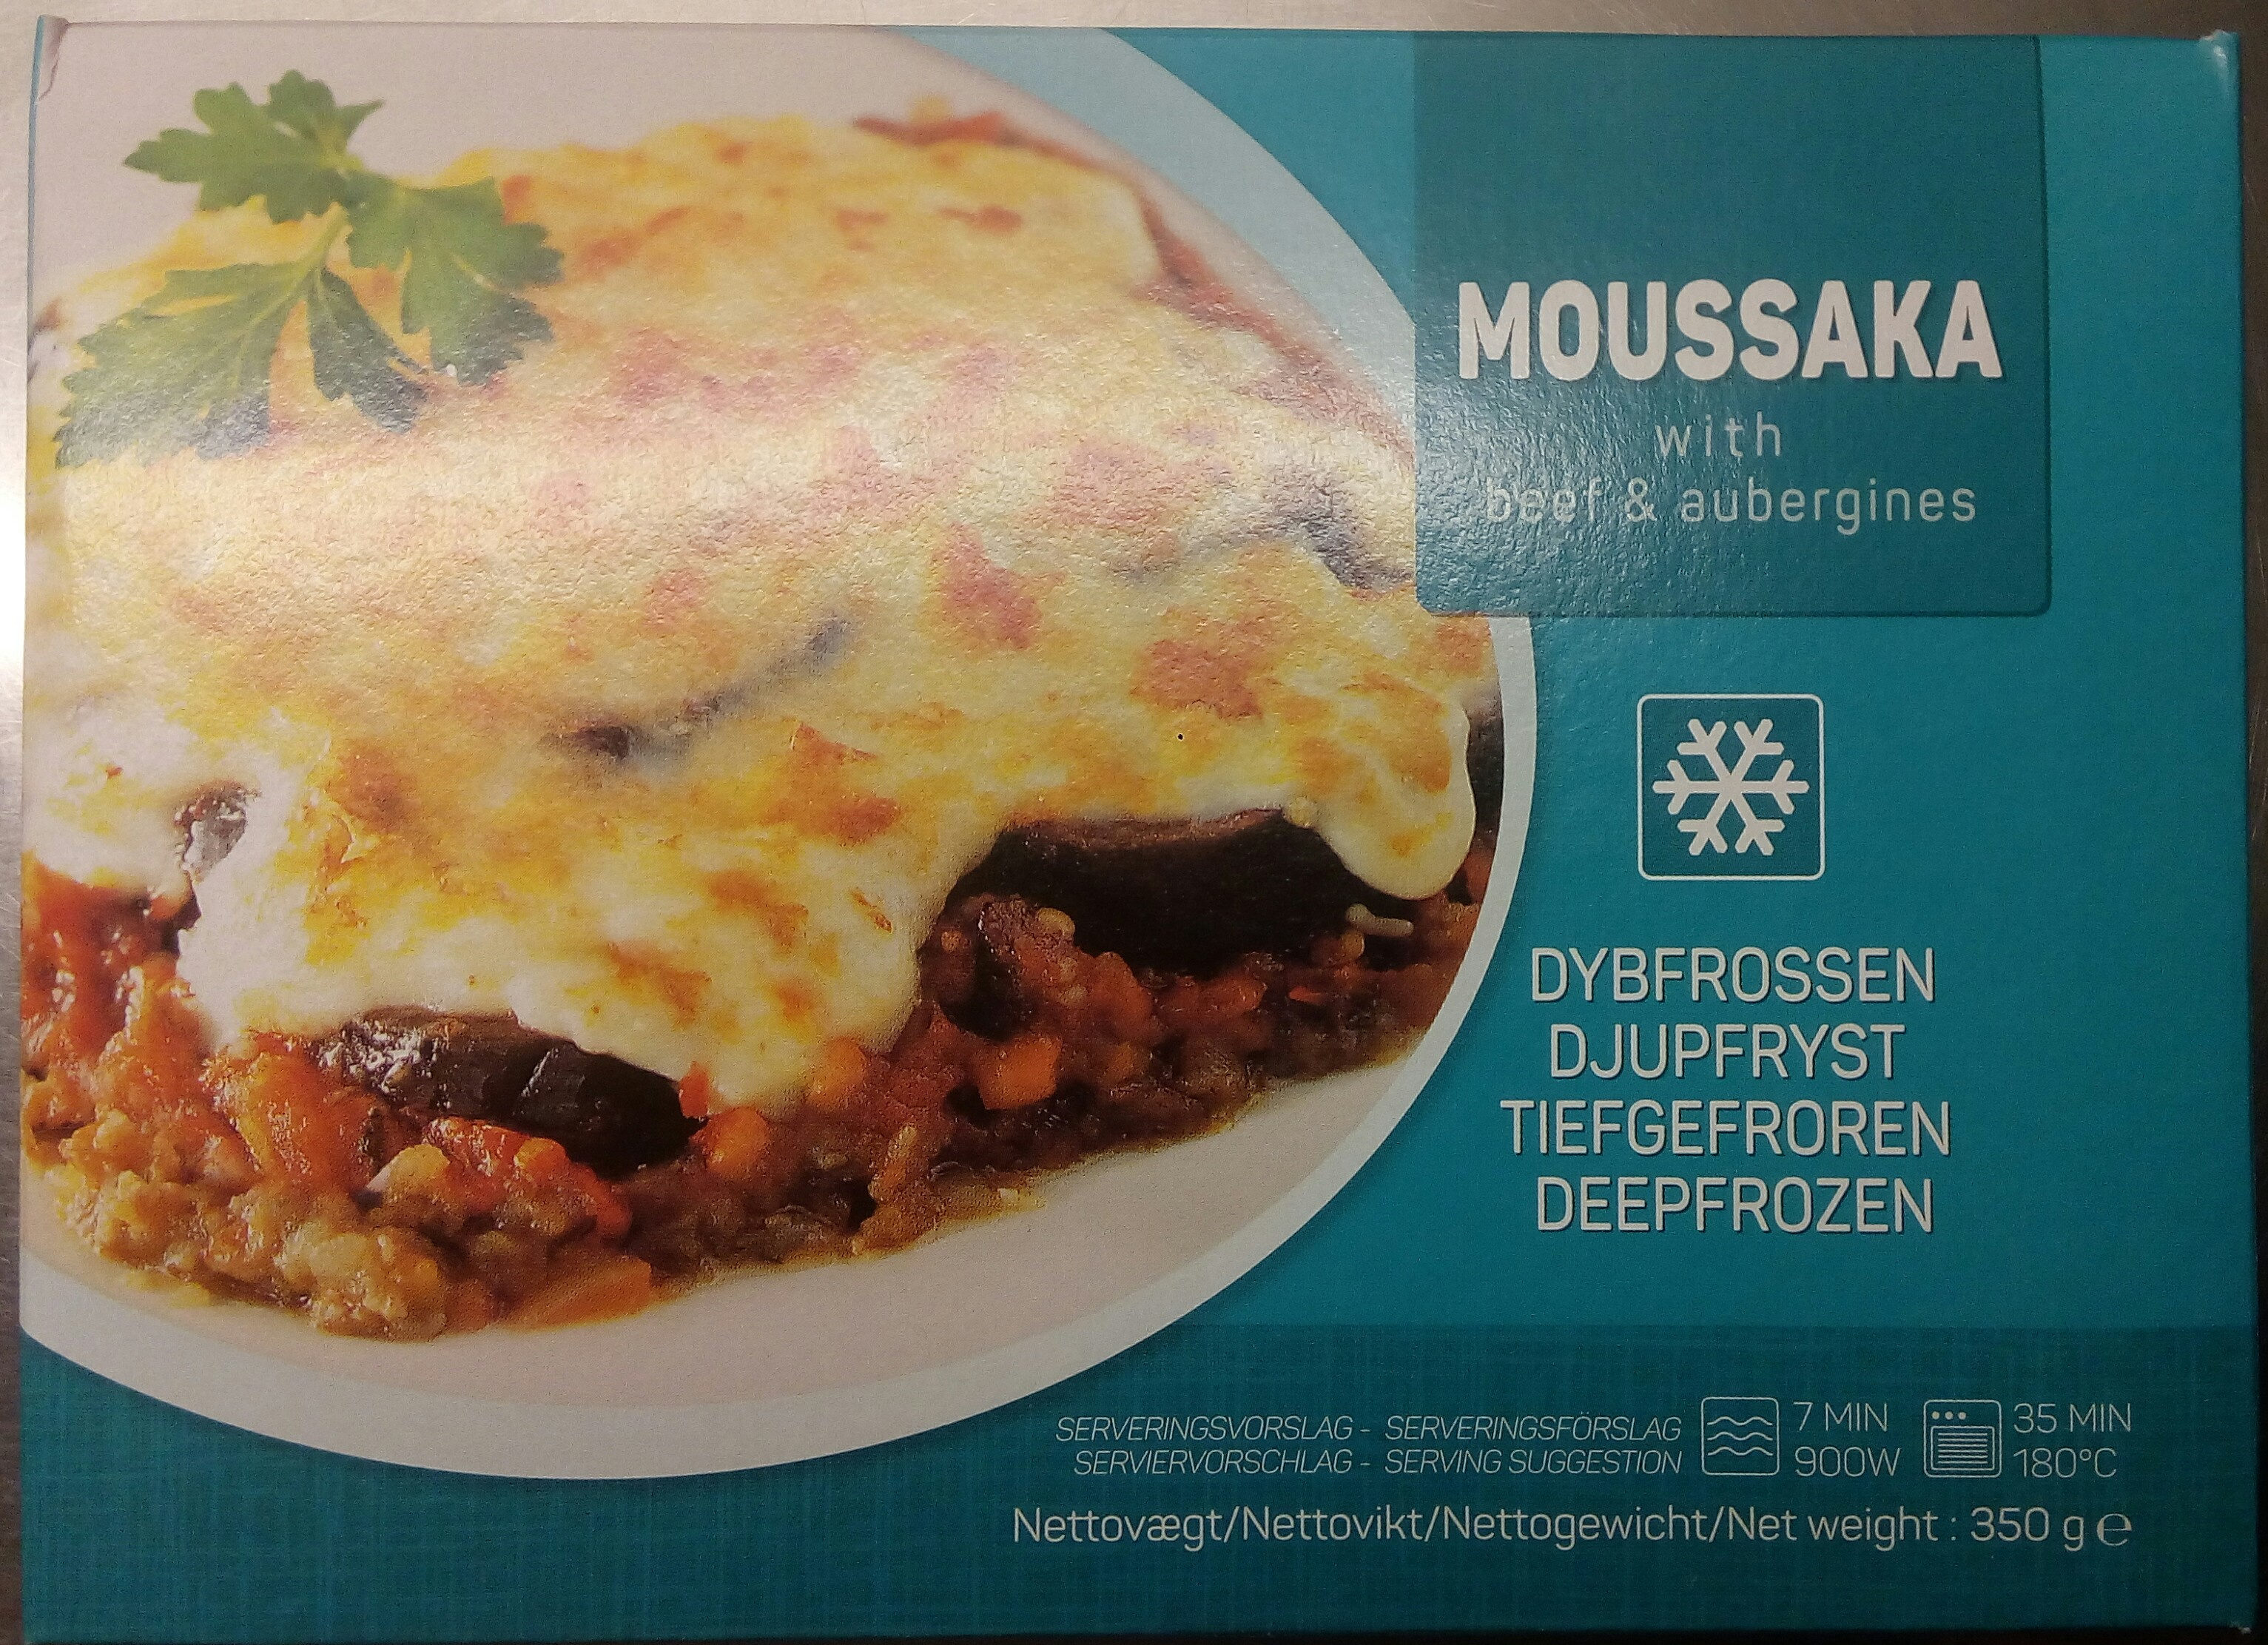 Moussaka with beef & aubergines - Produit